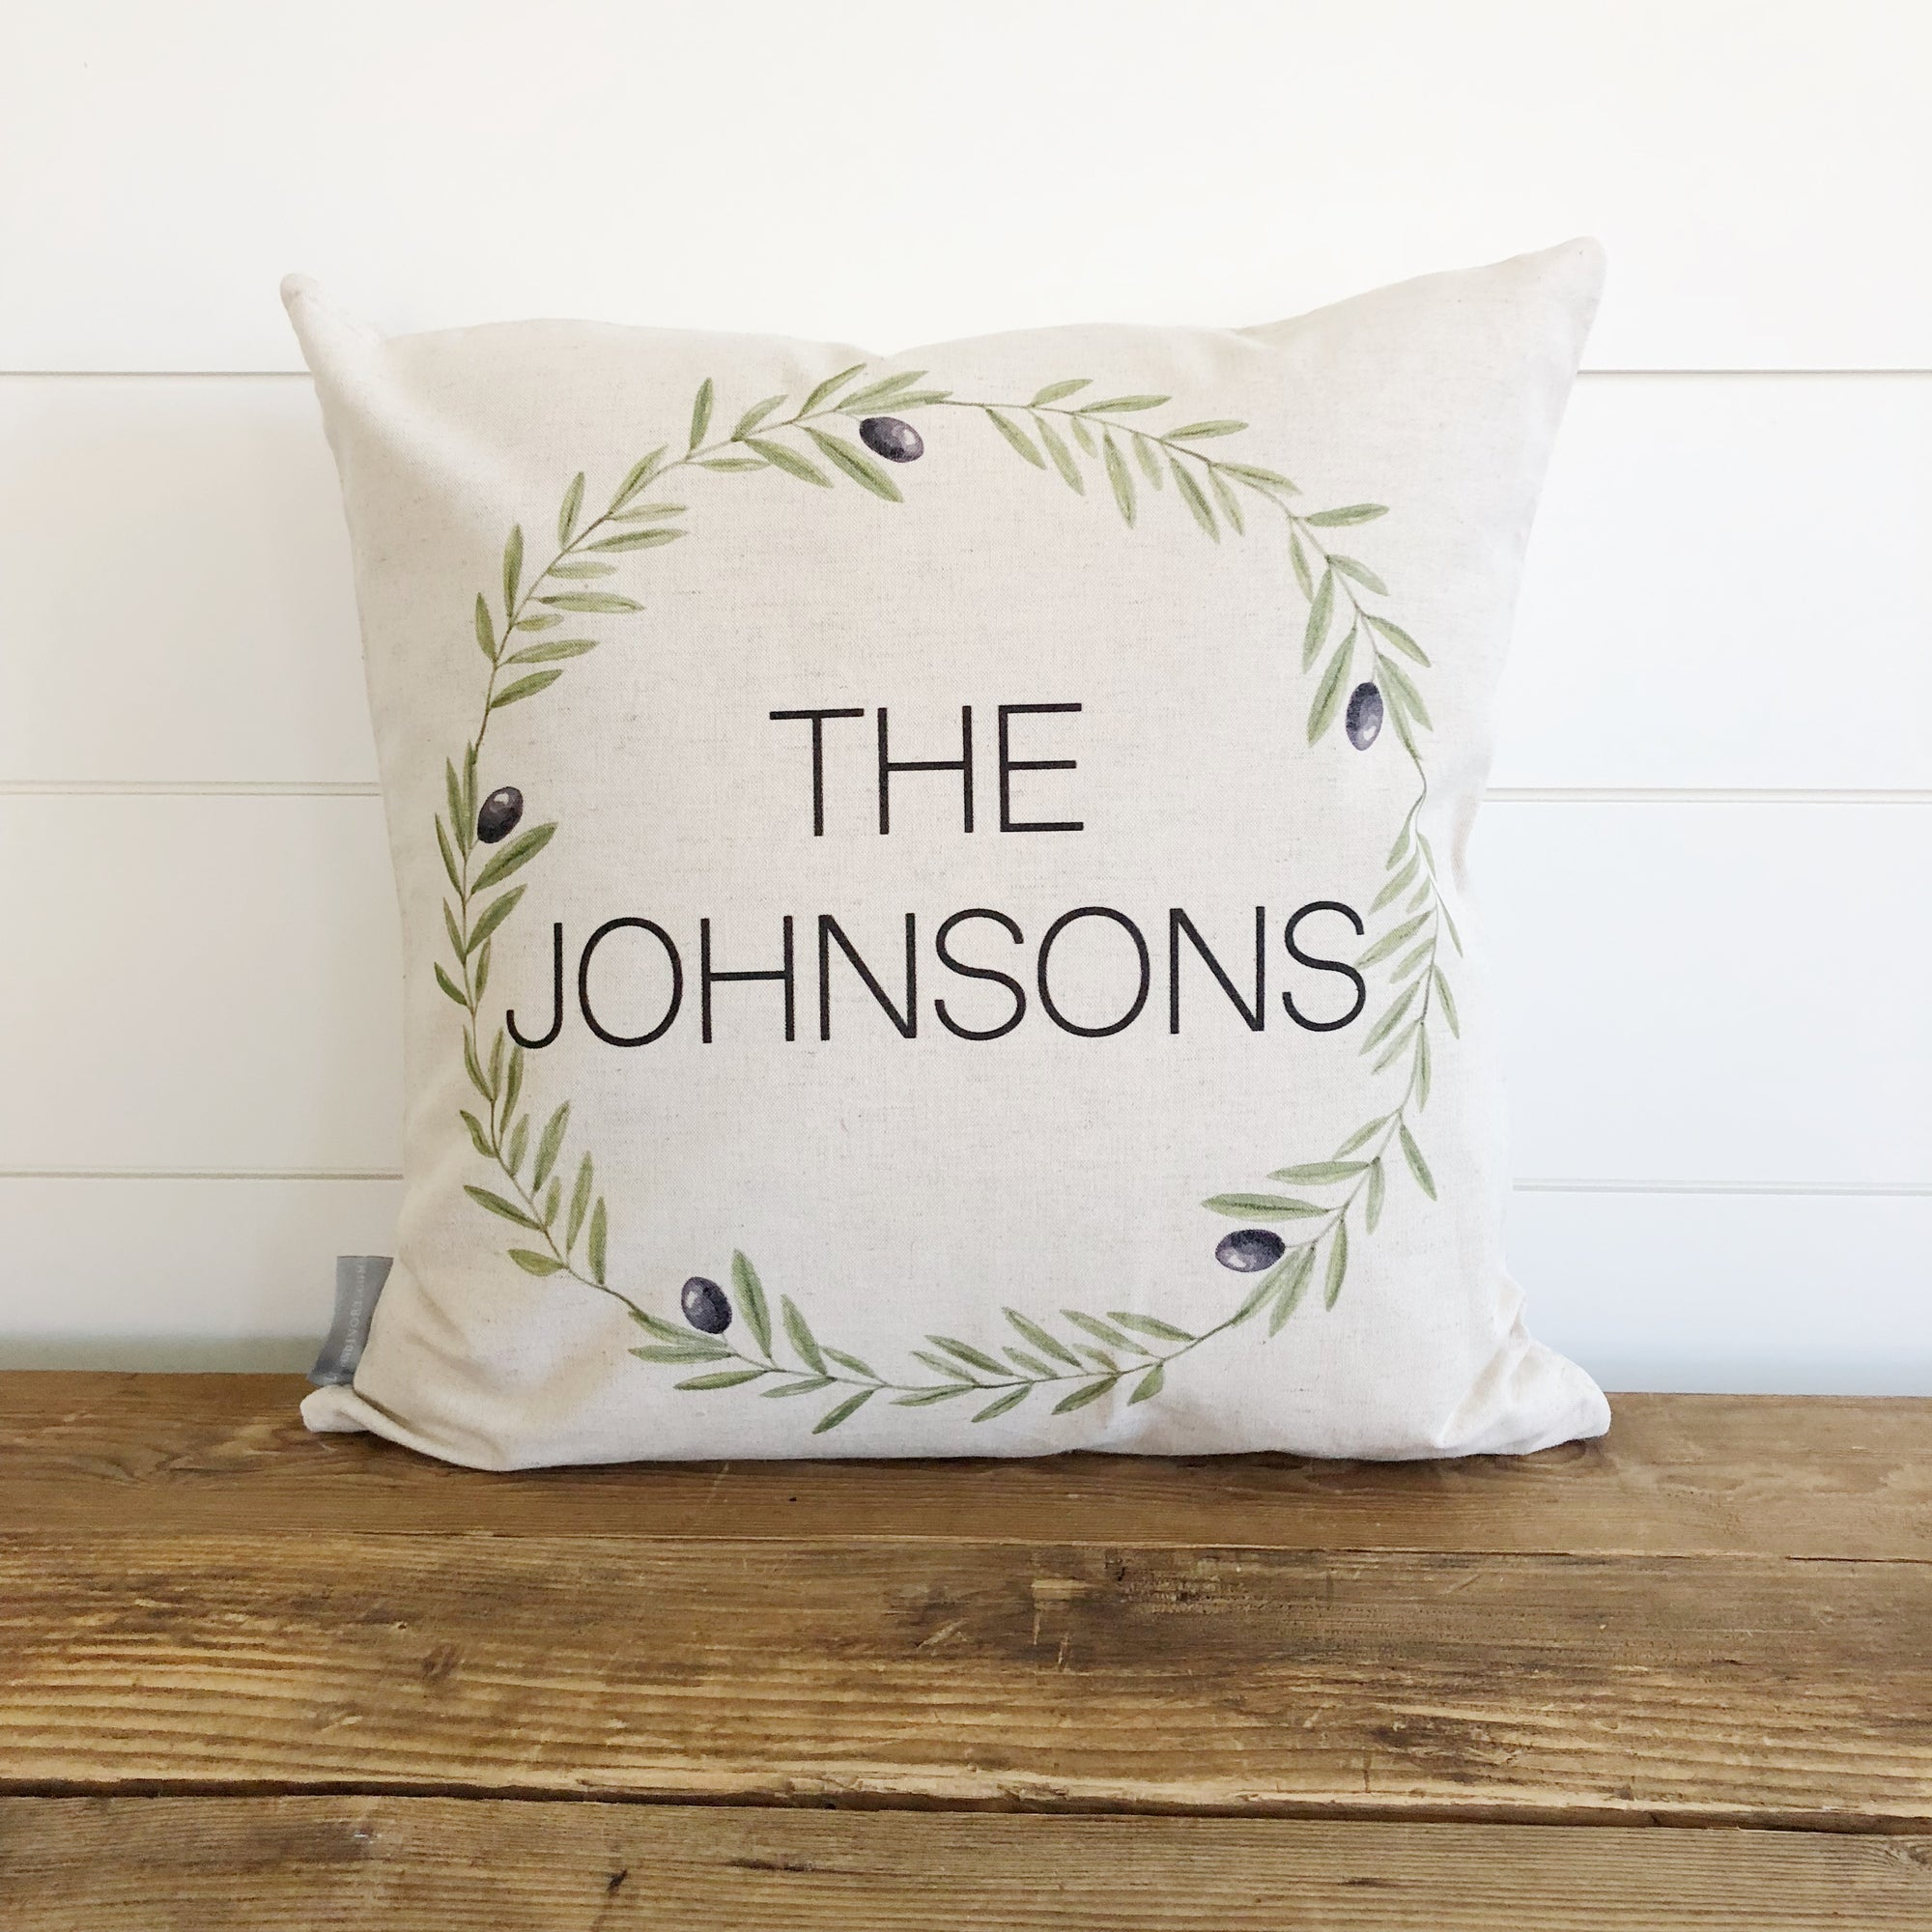 Olive Wreath Name Pillow Cover - Linen and Ivory